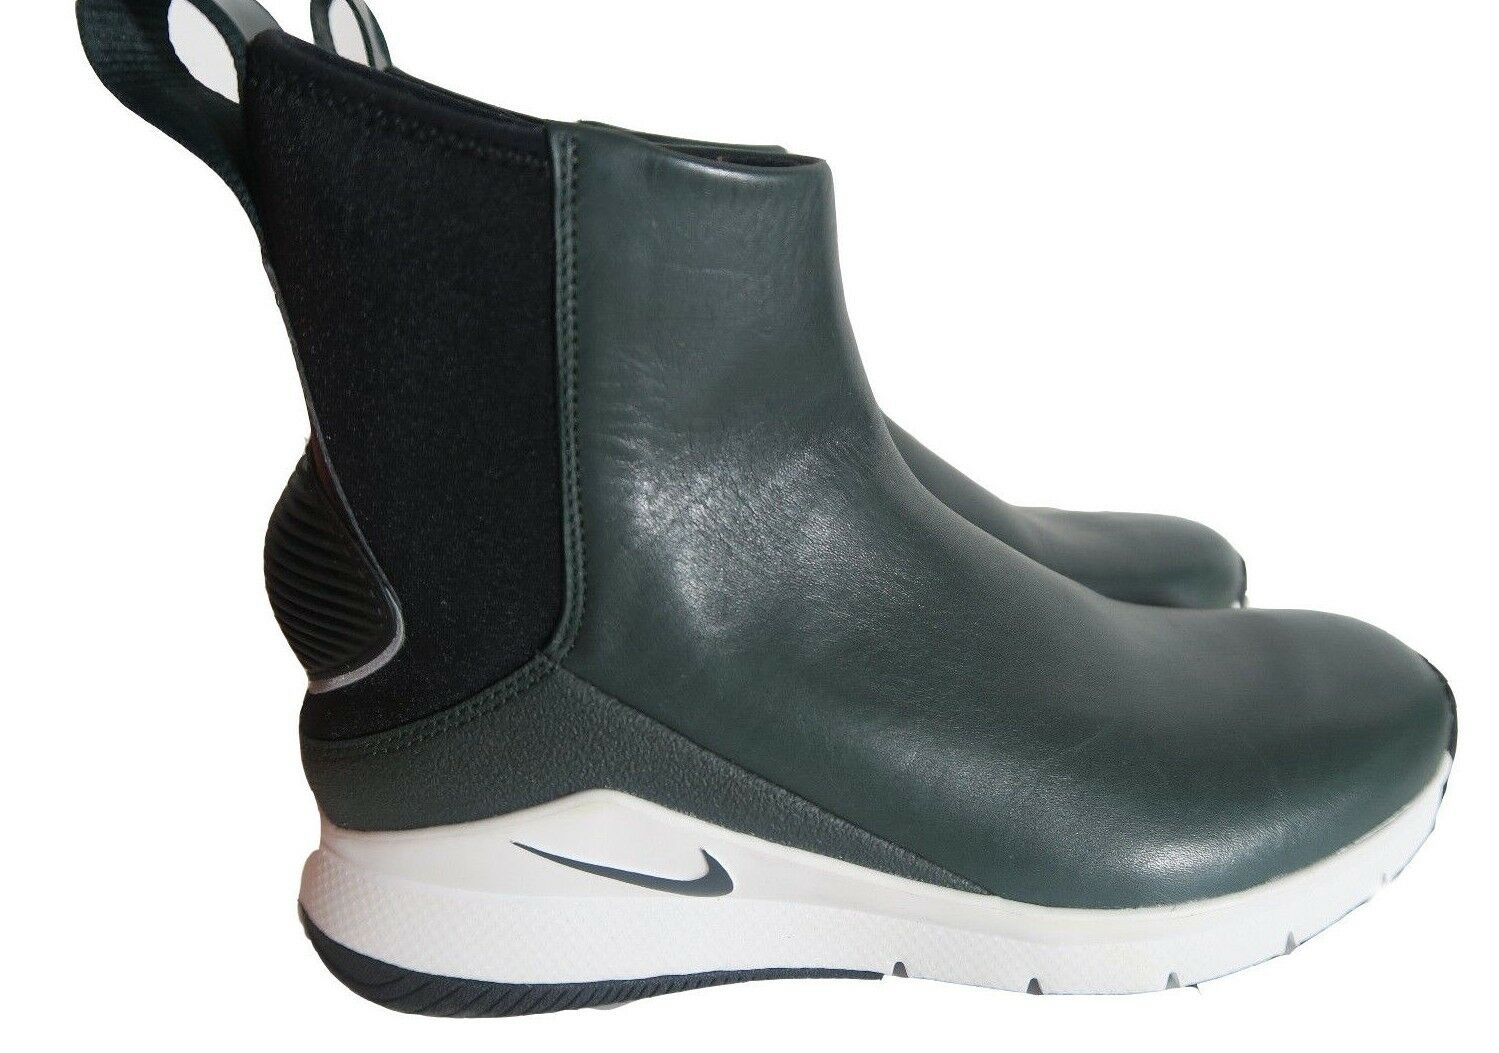 Nike Rivah Wmns Sz 8 HI Premium Green Leather Waterproof Waterproof Waterproof Wedge Boots AA1112-300 94f979